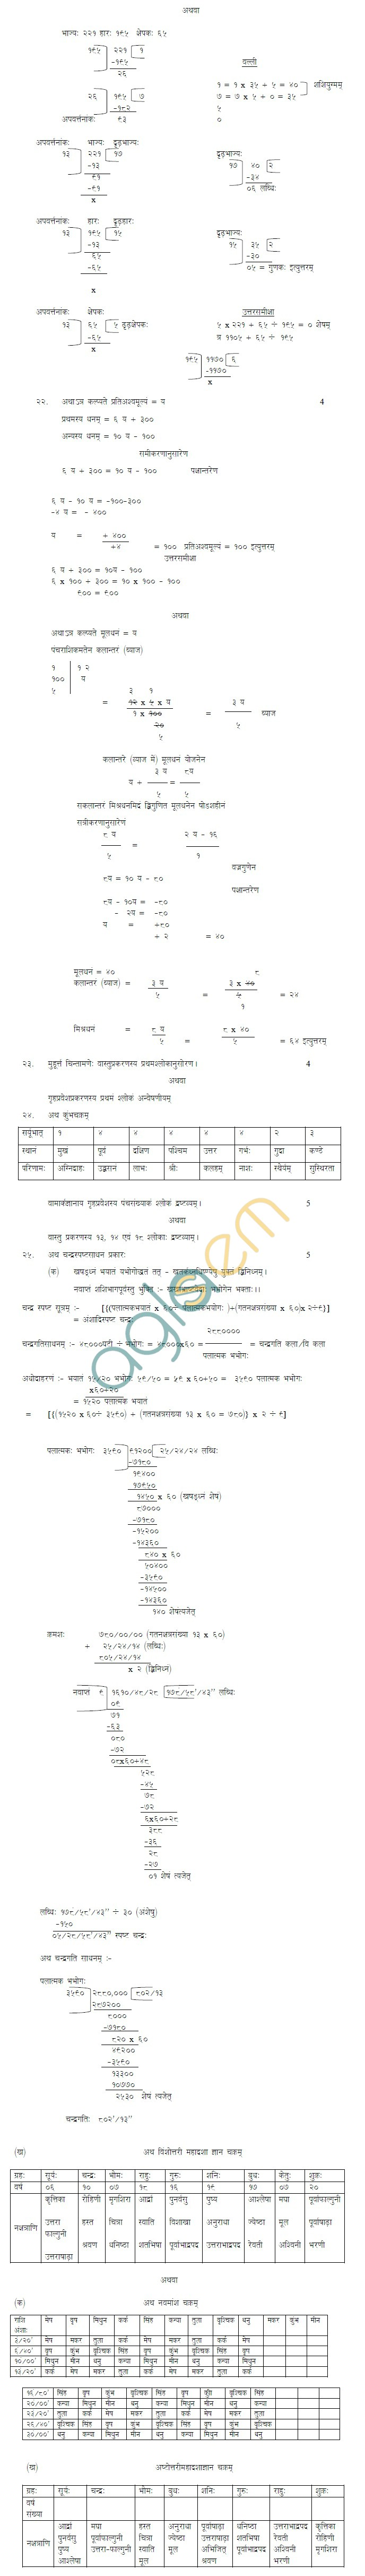 Rajasthan Board Class 12 Jyotish Shastra Model Question Paper